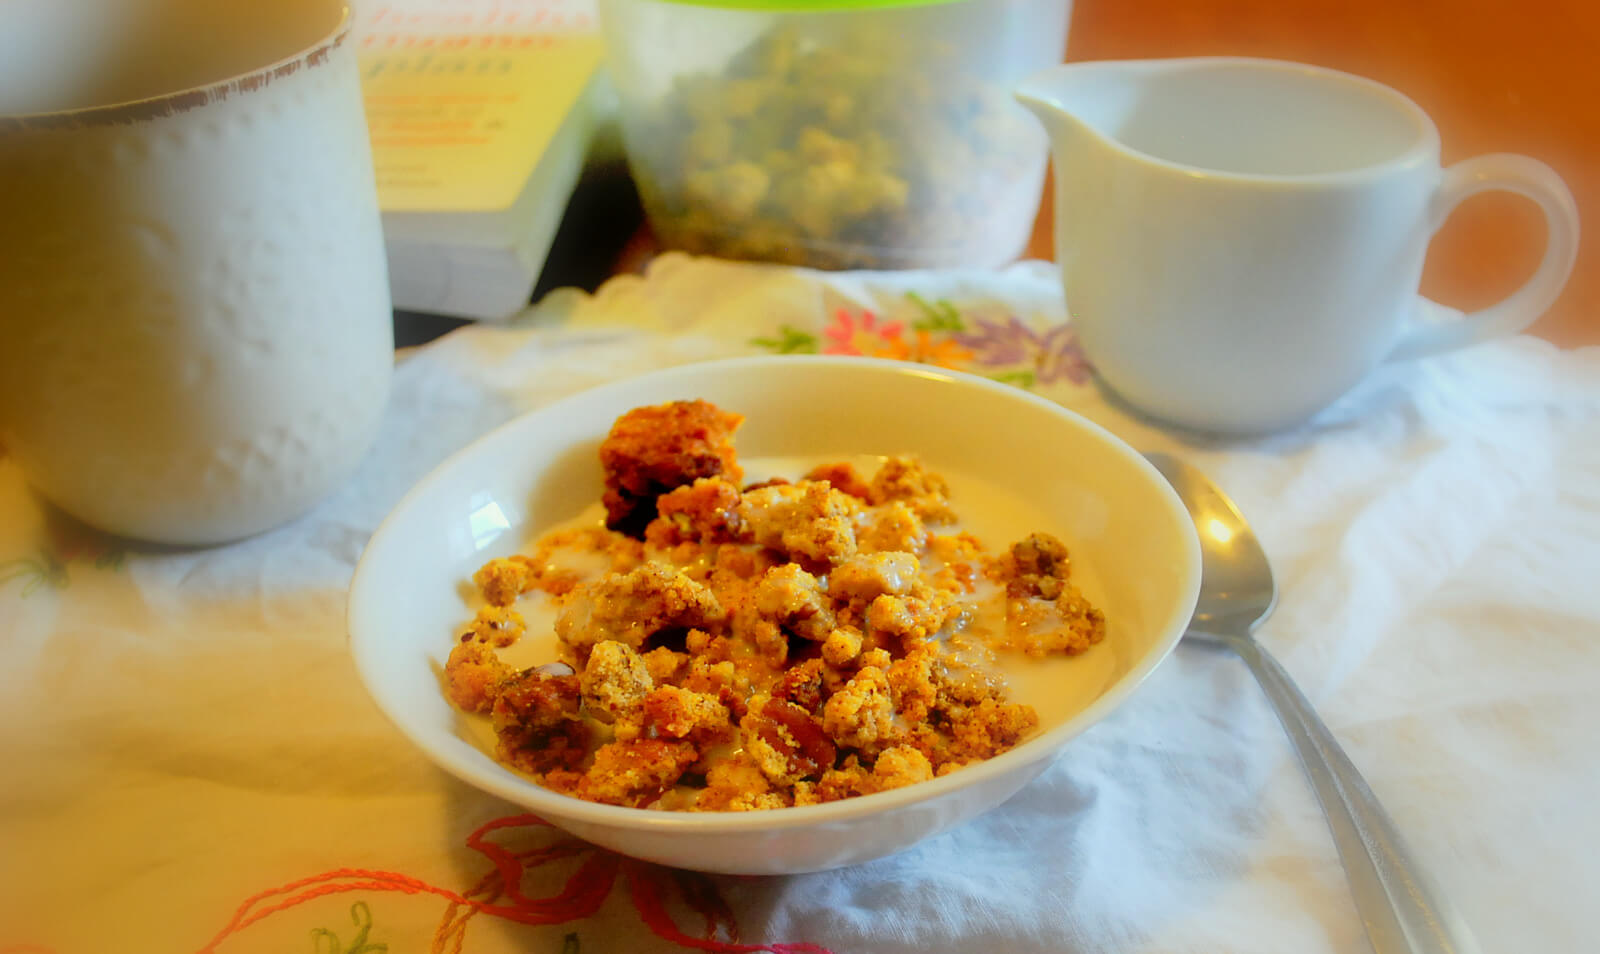 Pumpkin Crumble Cereal Wonderfully Made And Dearly Loved